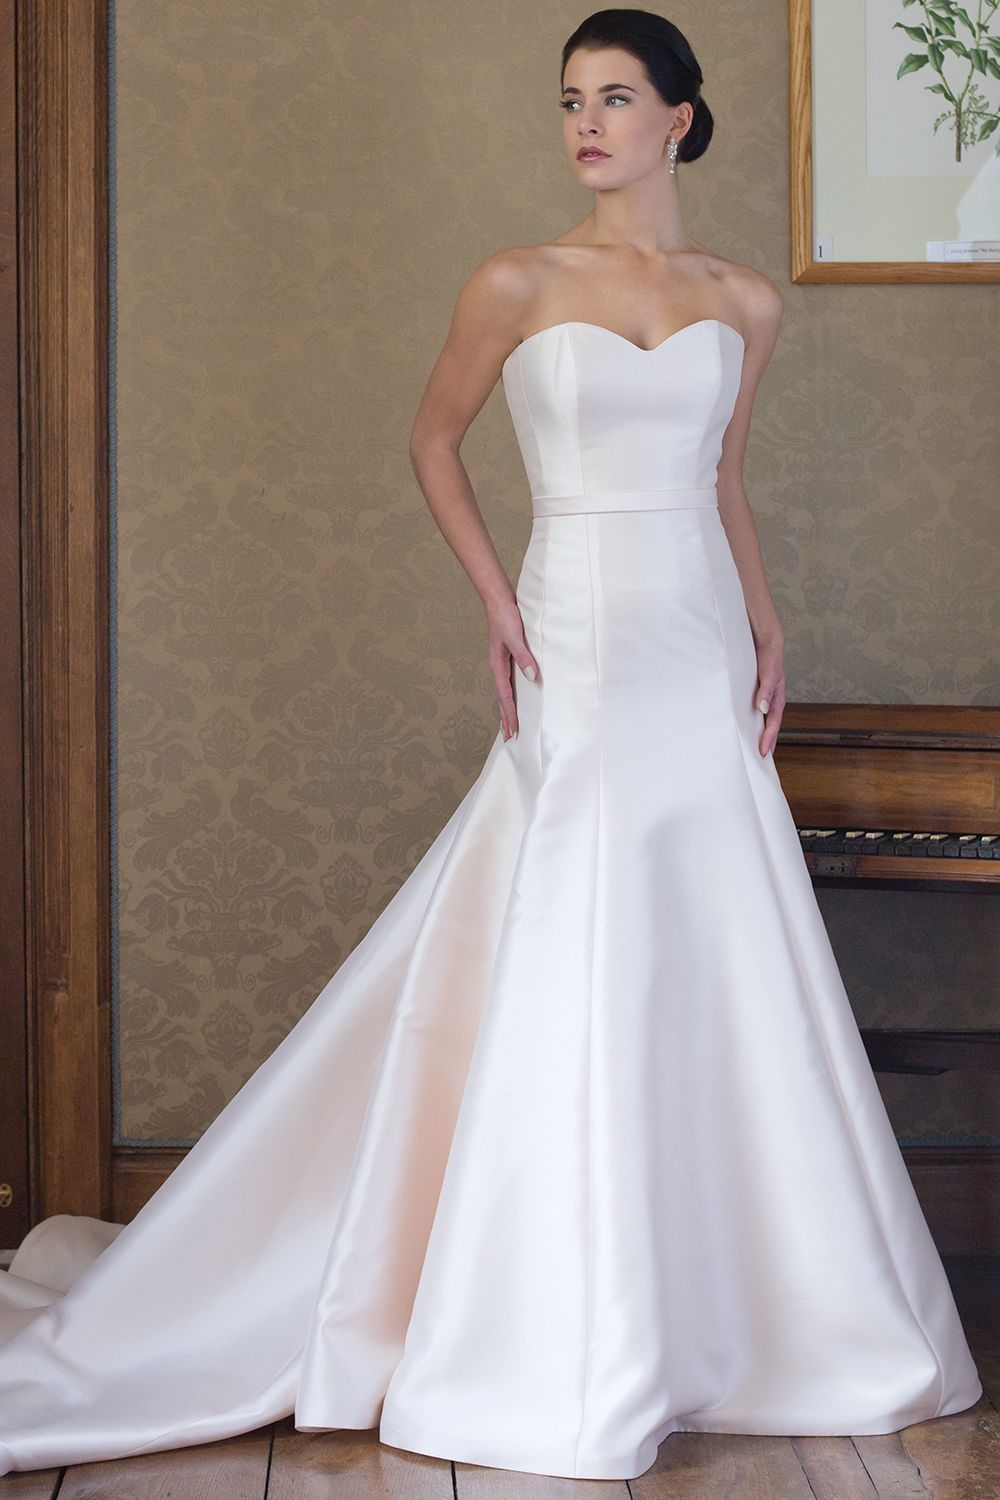 Wedding Gown By Augusta Jones. Style - Rebecca size 16 in Blush. A  strapless fit and flair gown with a gentle sweetheart neckline. 9a543df98f90